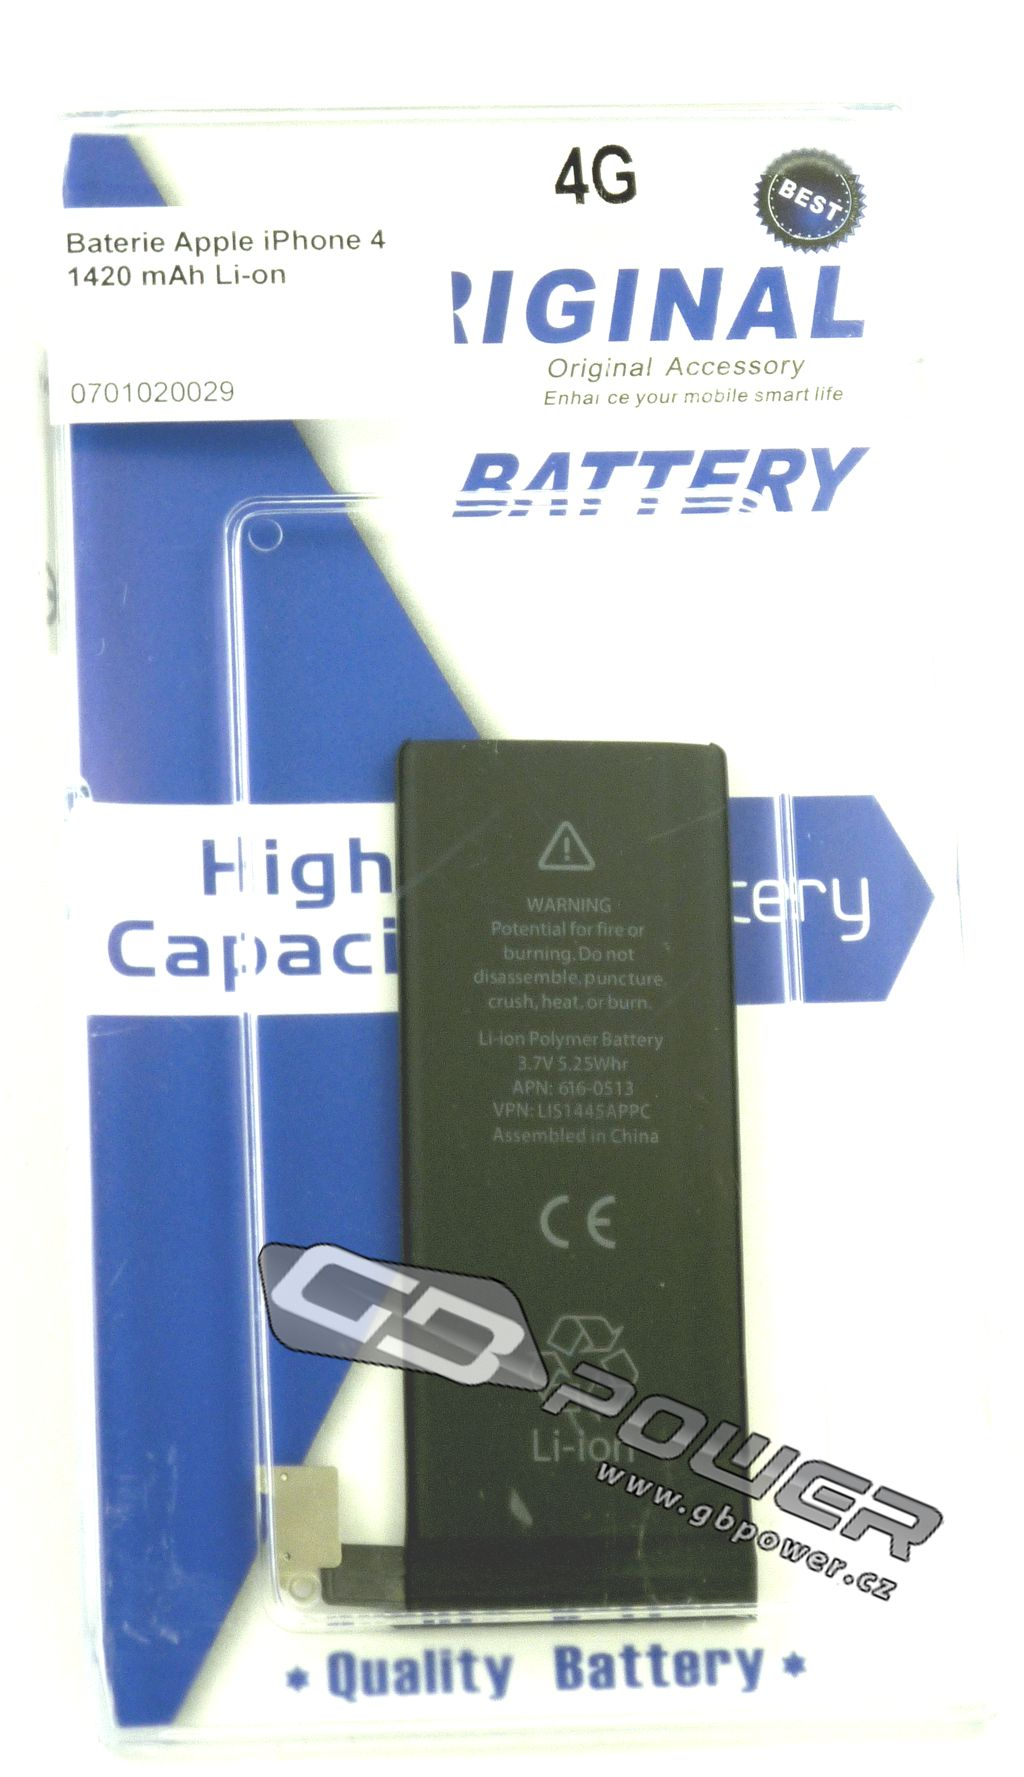 Baterie Apple iPhone 4 1420 mAh Li-on